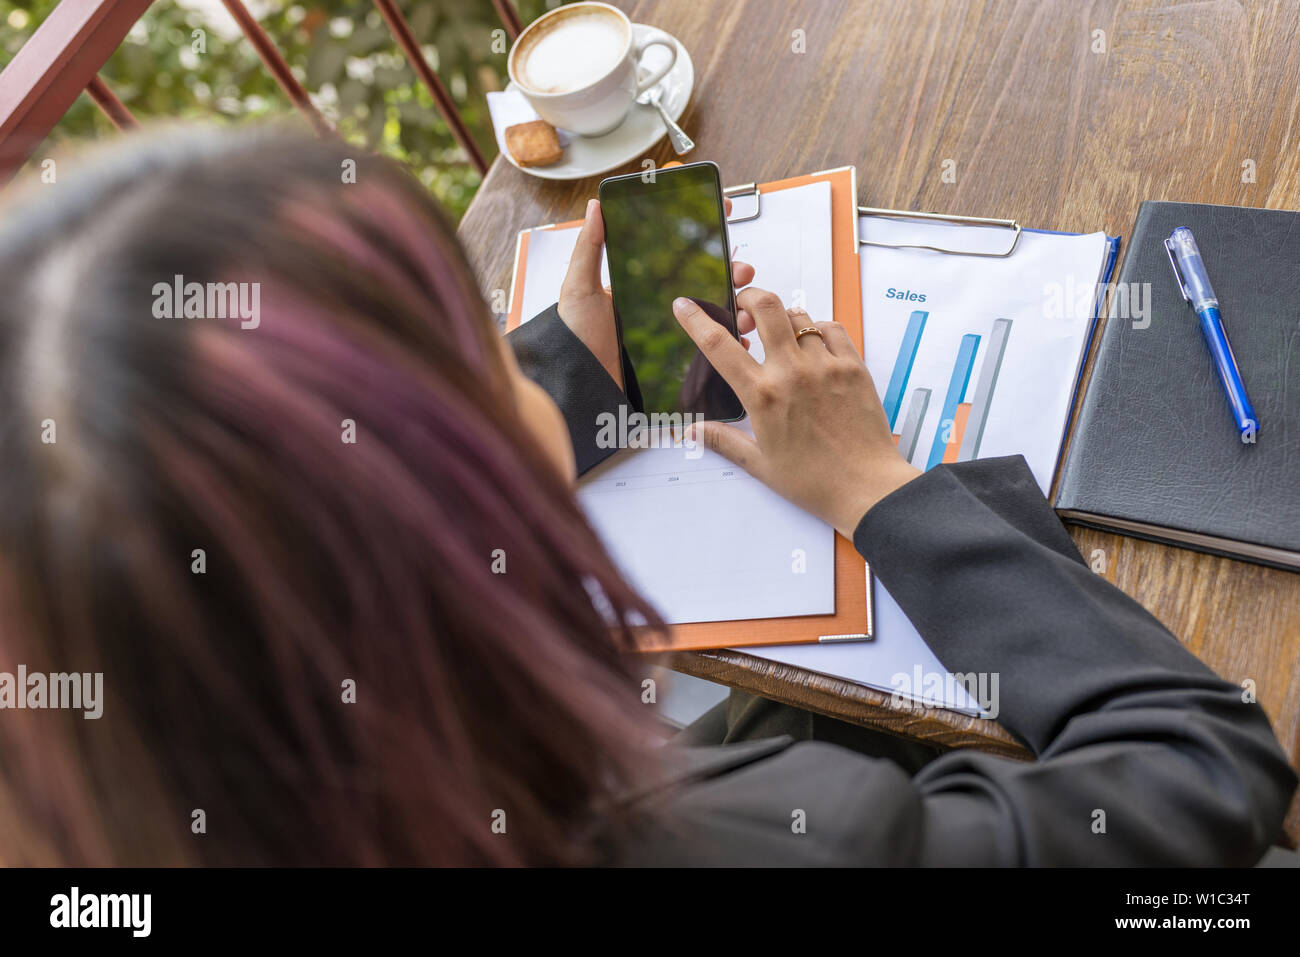 High angle view of woman hand tapping on cellphone screen - Stock Image